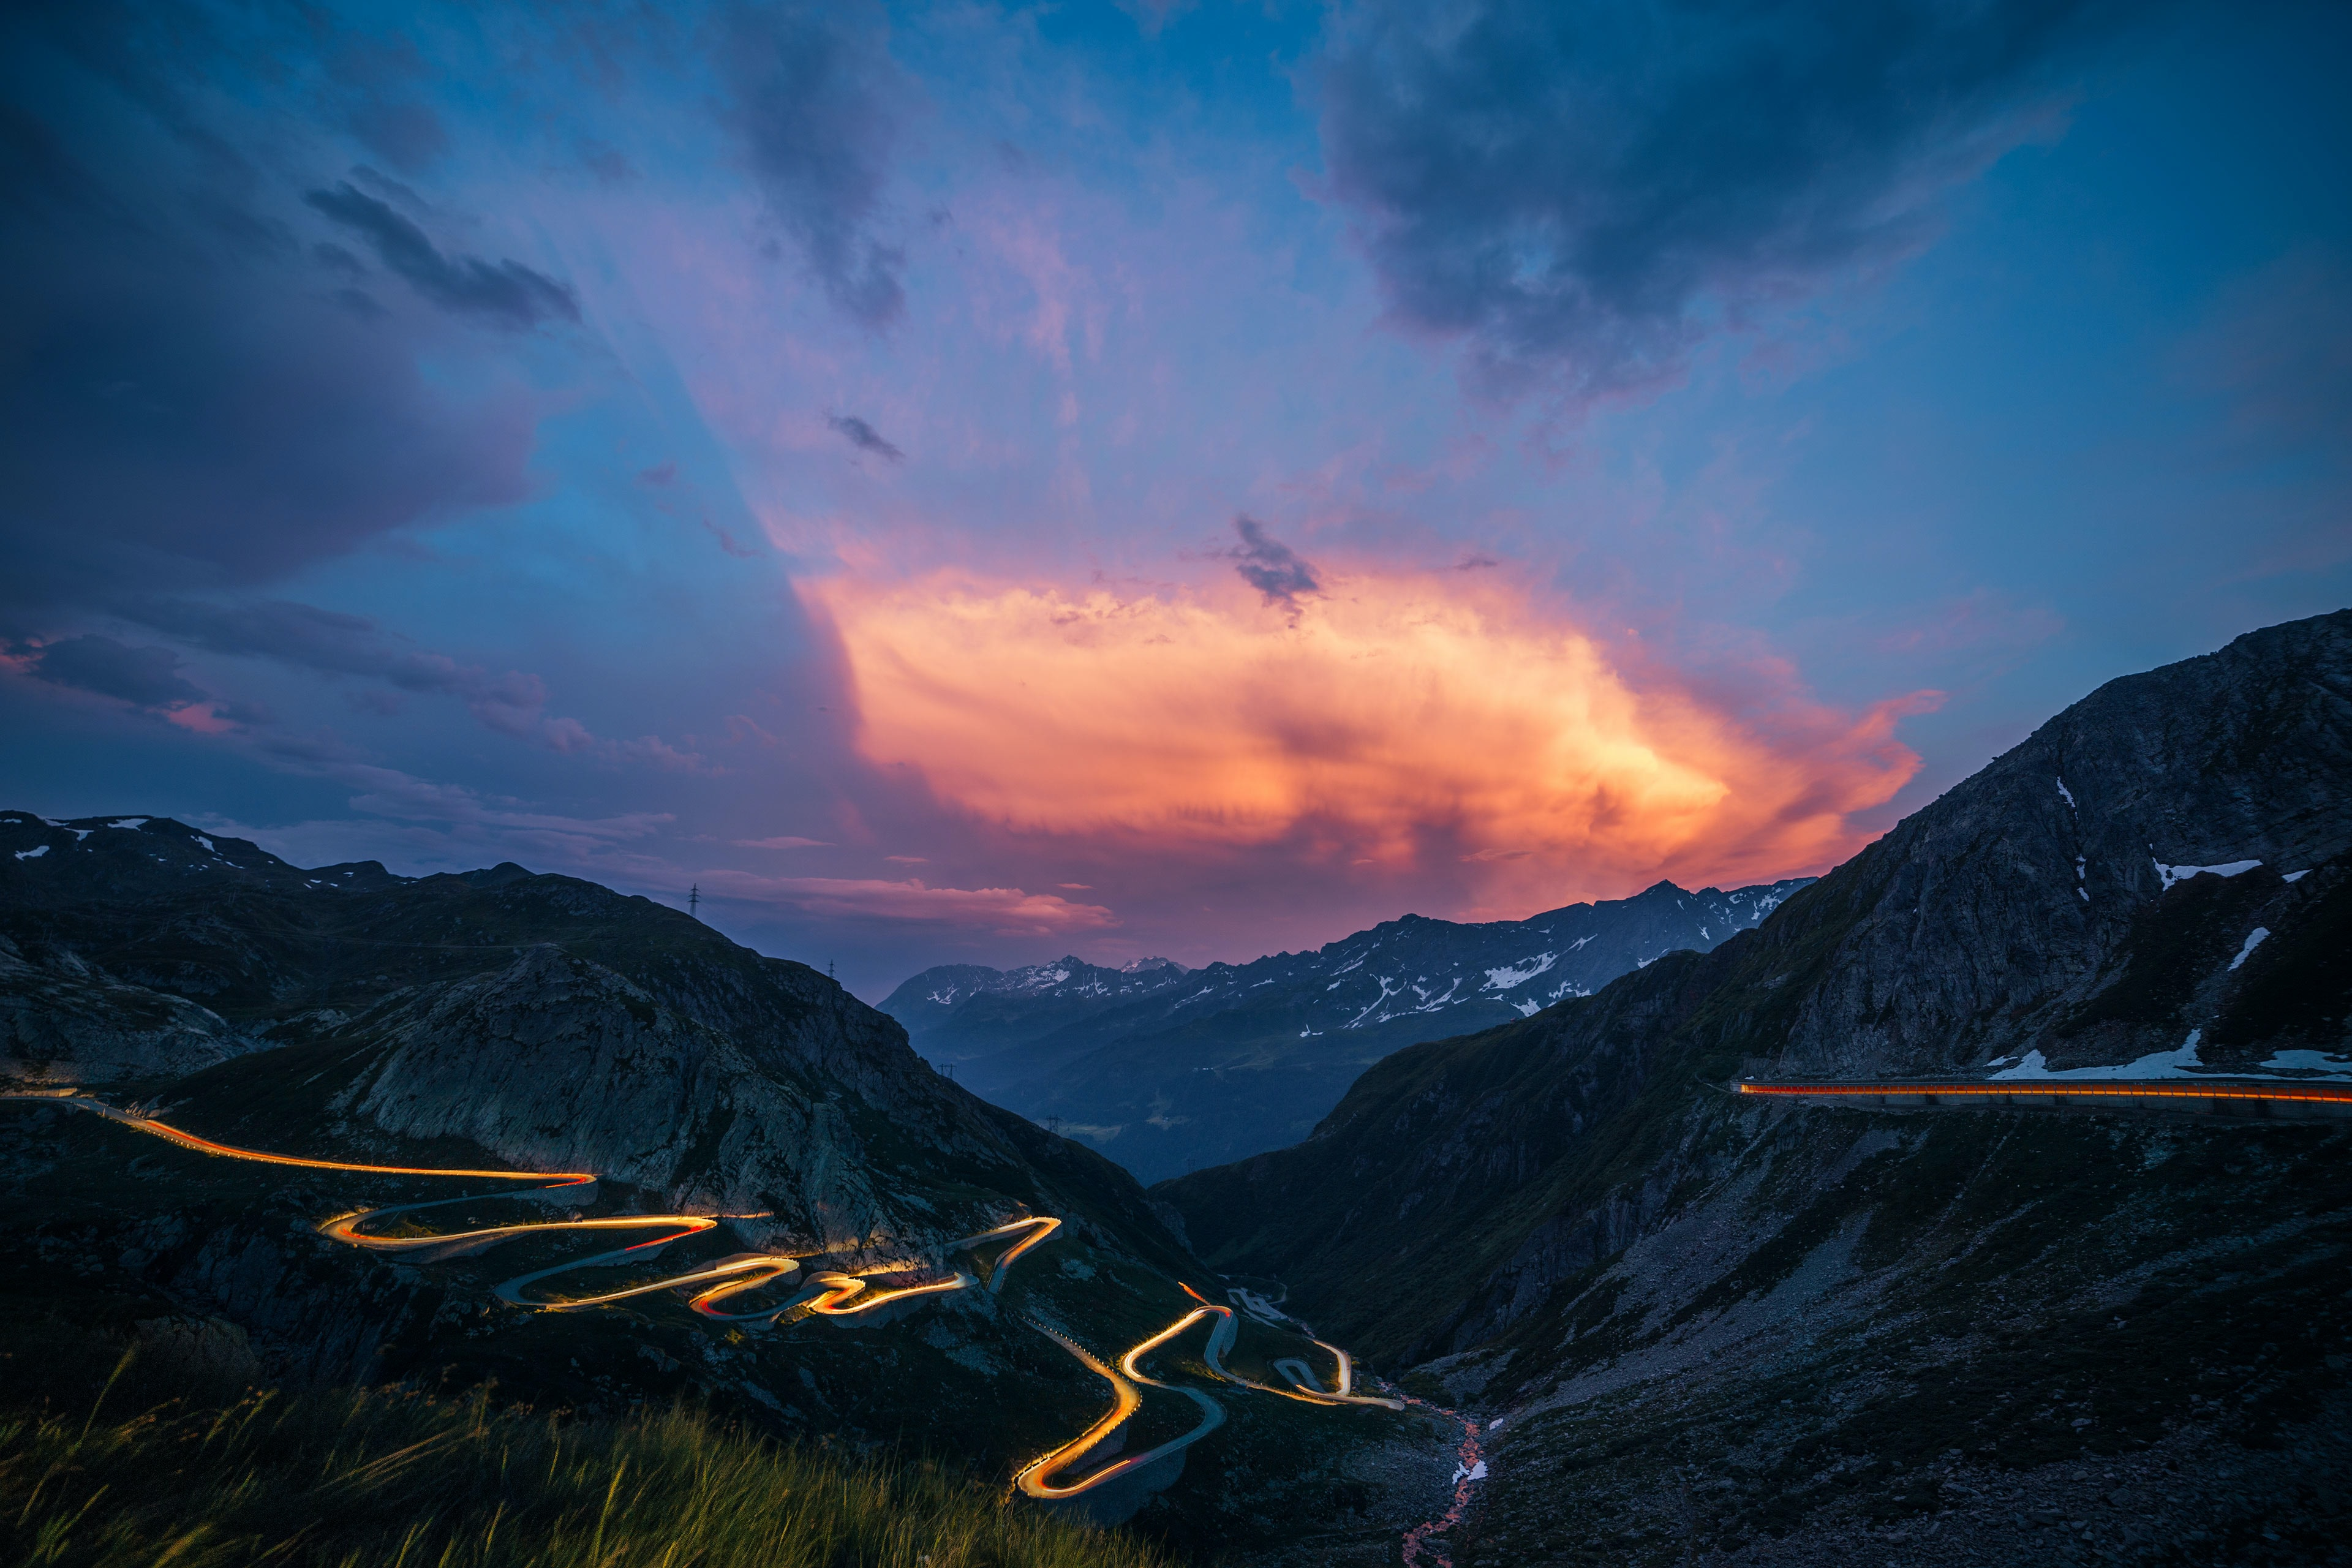 gotthard pass switzerland alps holiday scenic road trip Europe adventure travel localbini biniblog alps